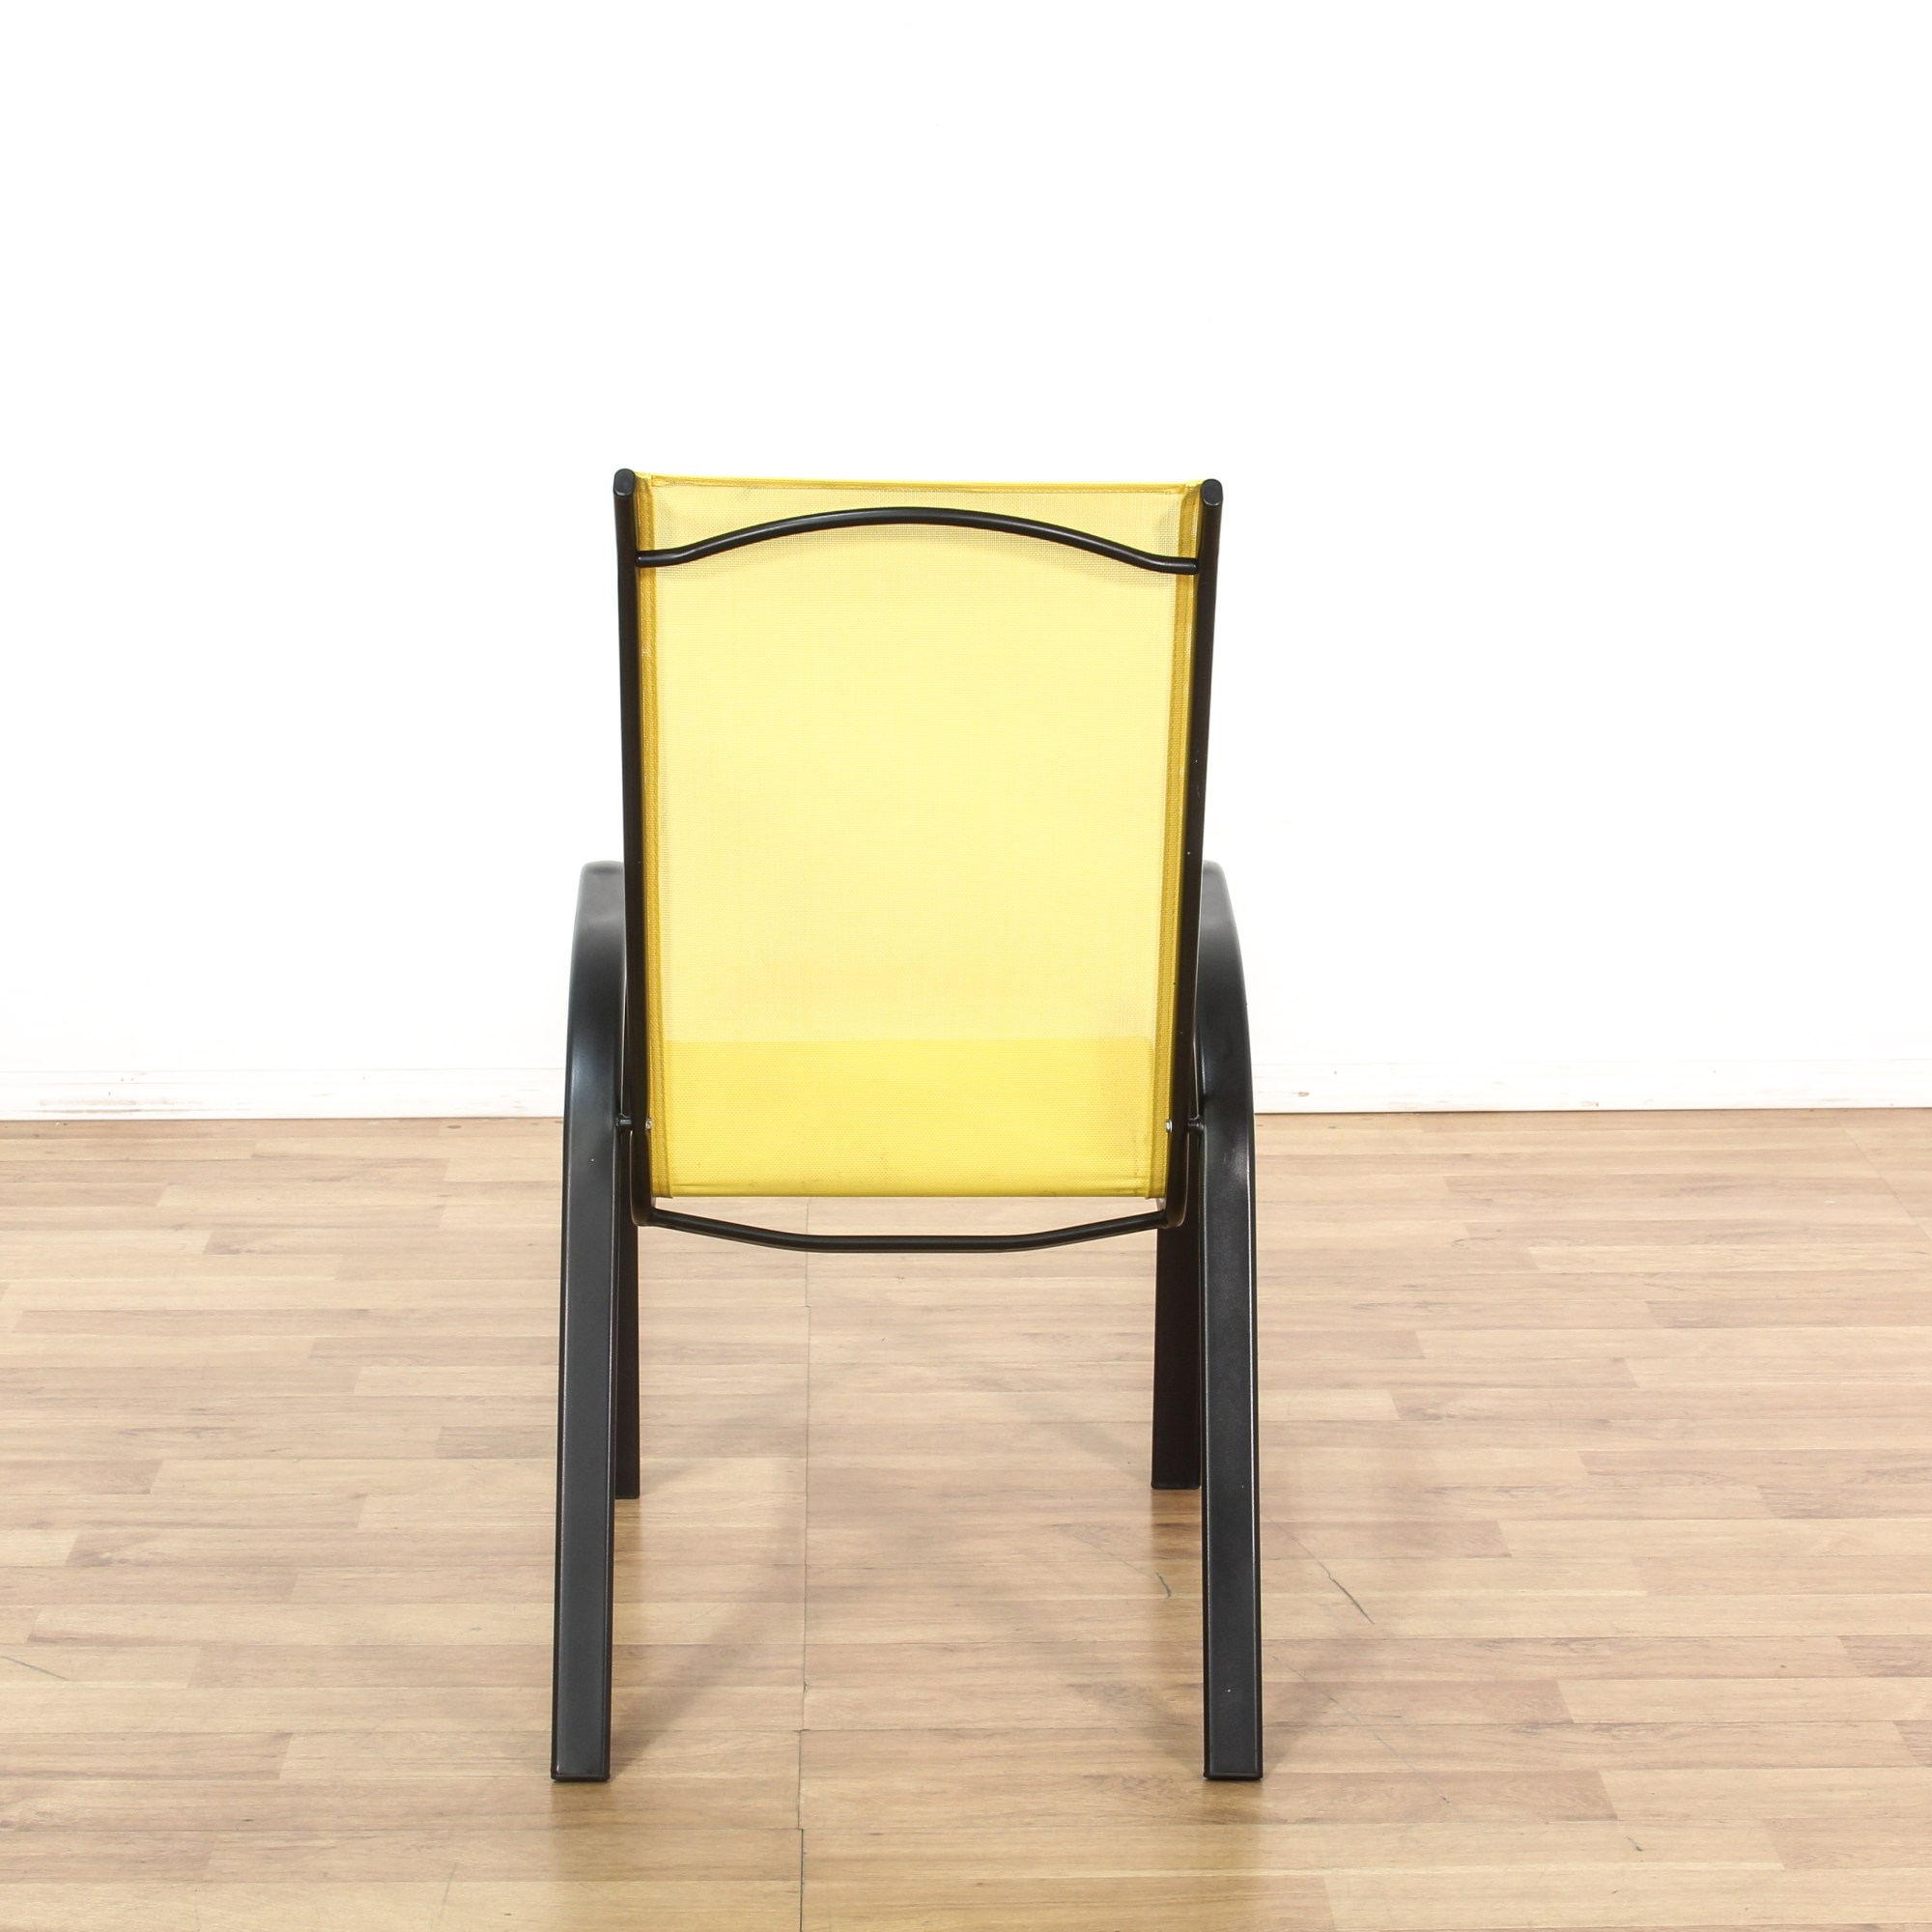 Yellow Metal Chairs Set Of 4 Black And Yellow Metal Outdoor Patio Chairs